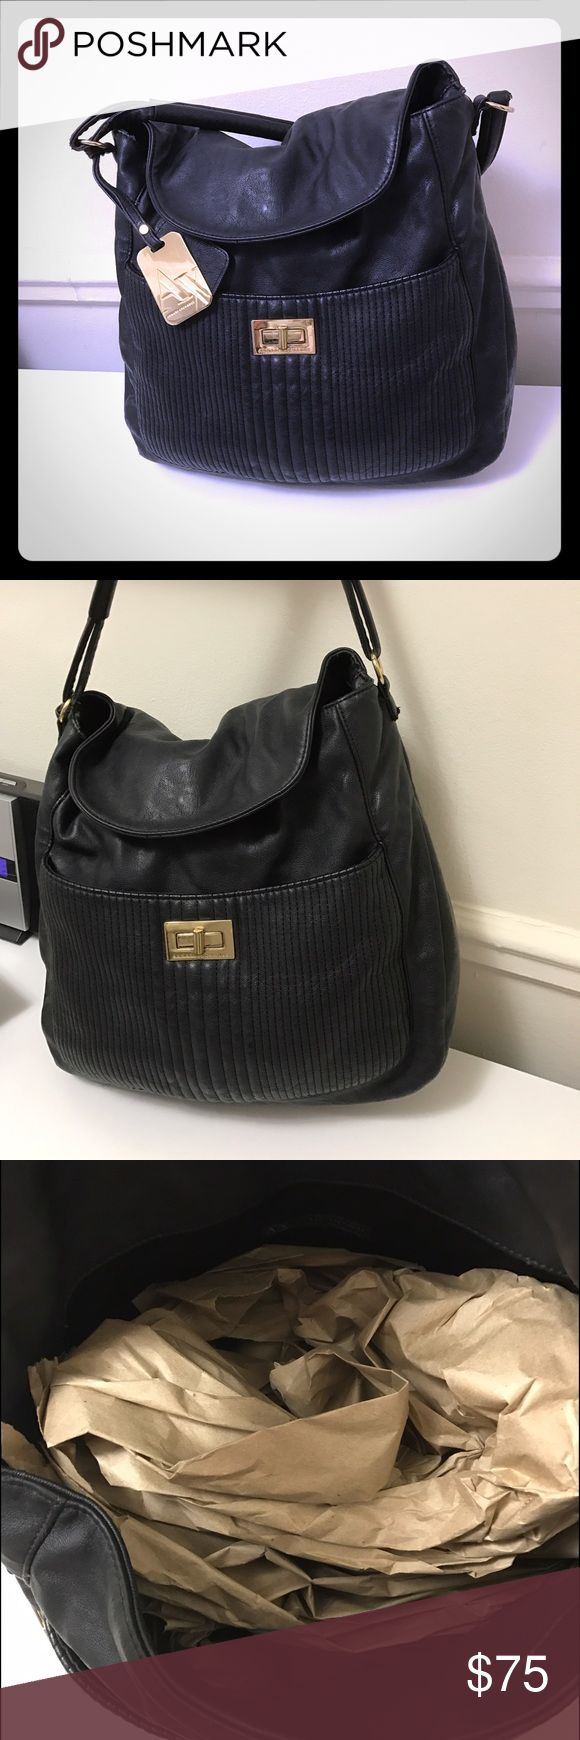 Armani Exchange tote hobo shoulder bag *Black Armani exchange black and gold hardware hobo bag. Large. Perfect for school/work. Fits large laptop. Great condition. Retails $129. Shoulder strap A/X Armani Exchange Bags Totes